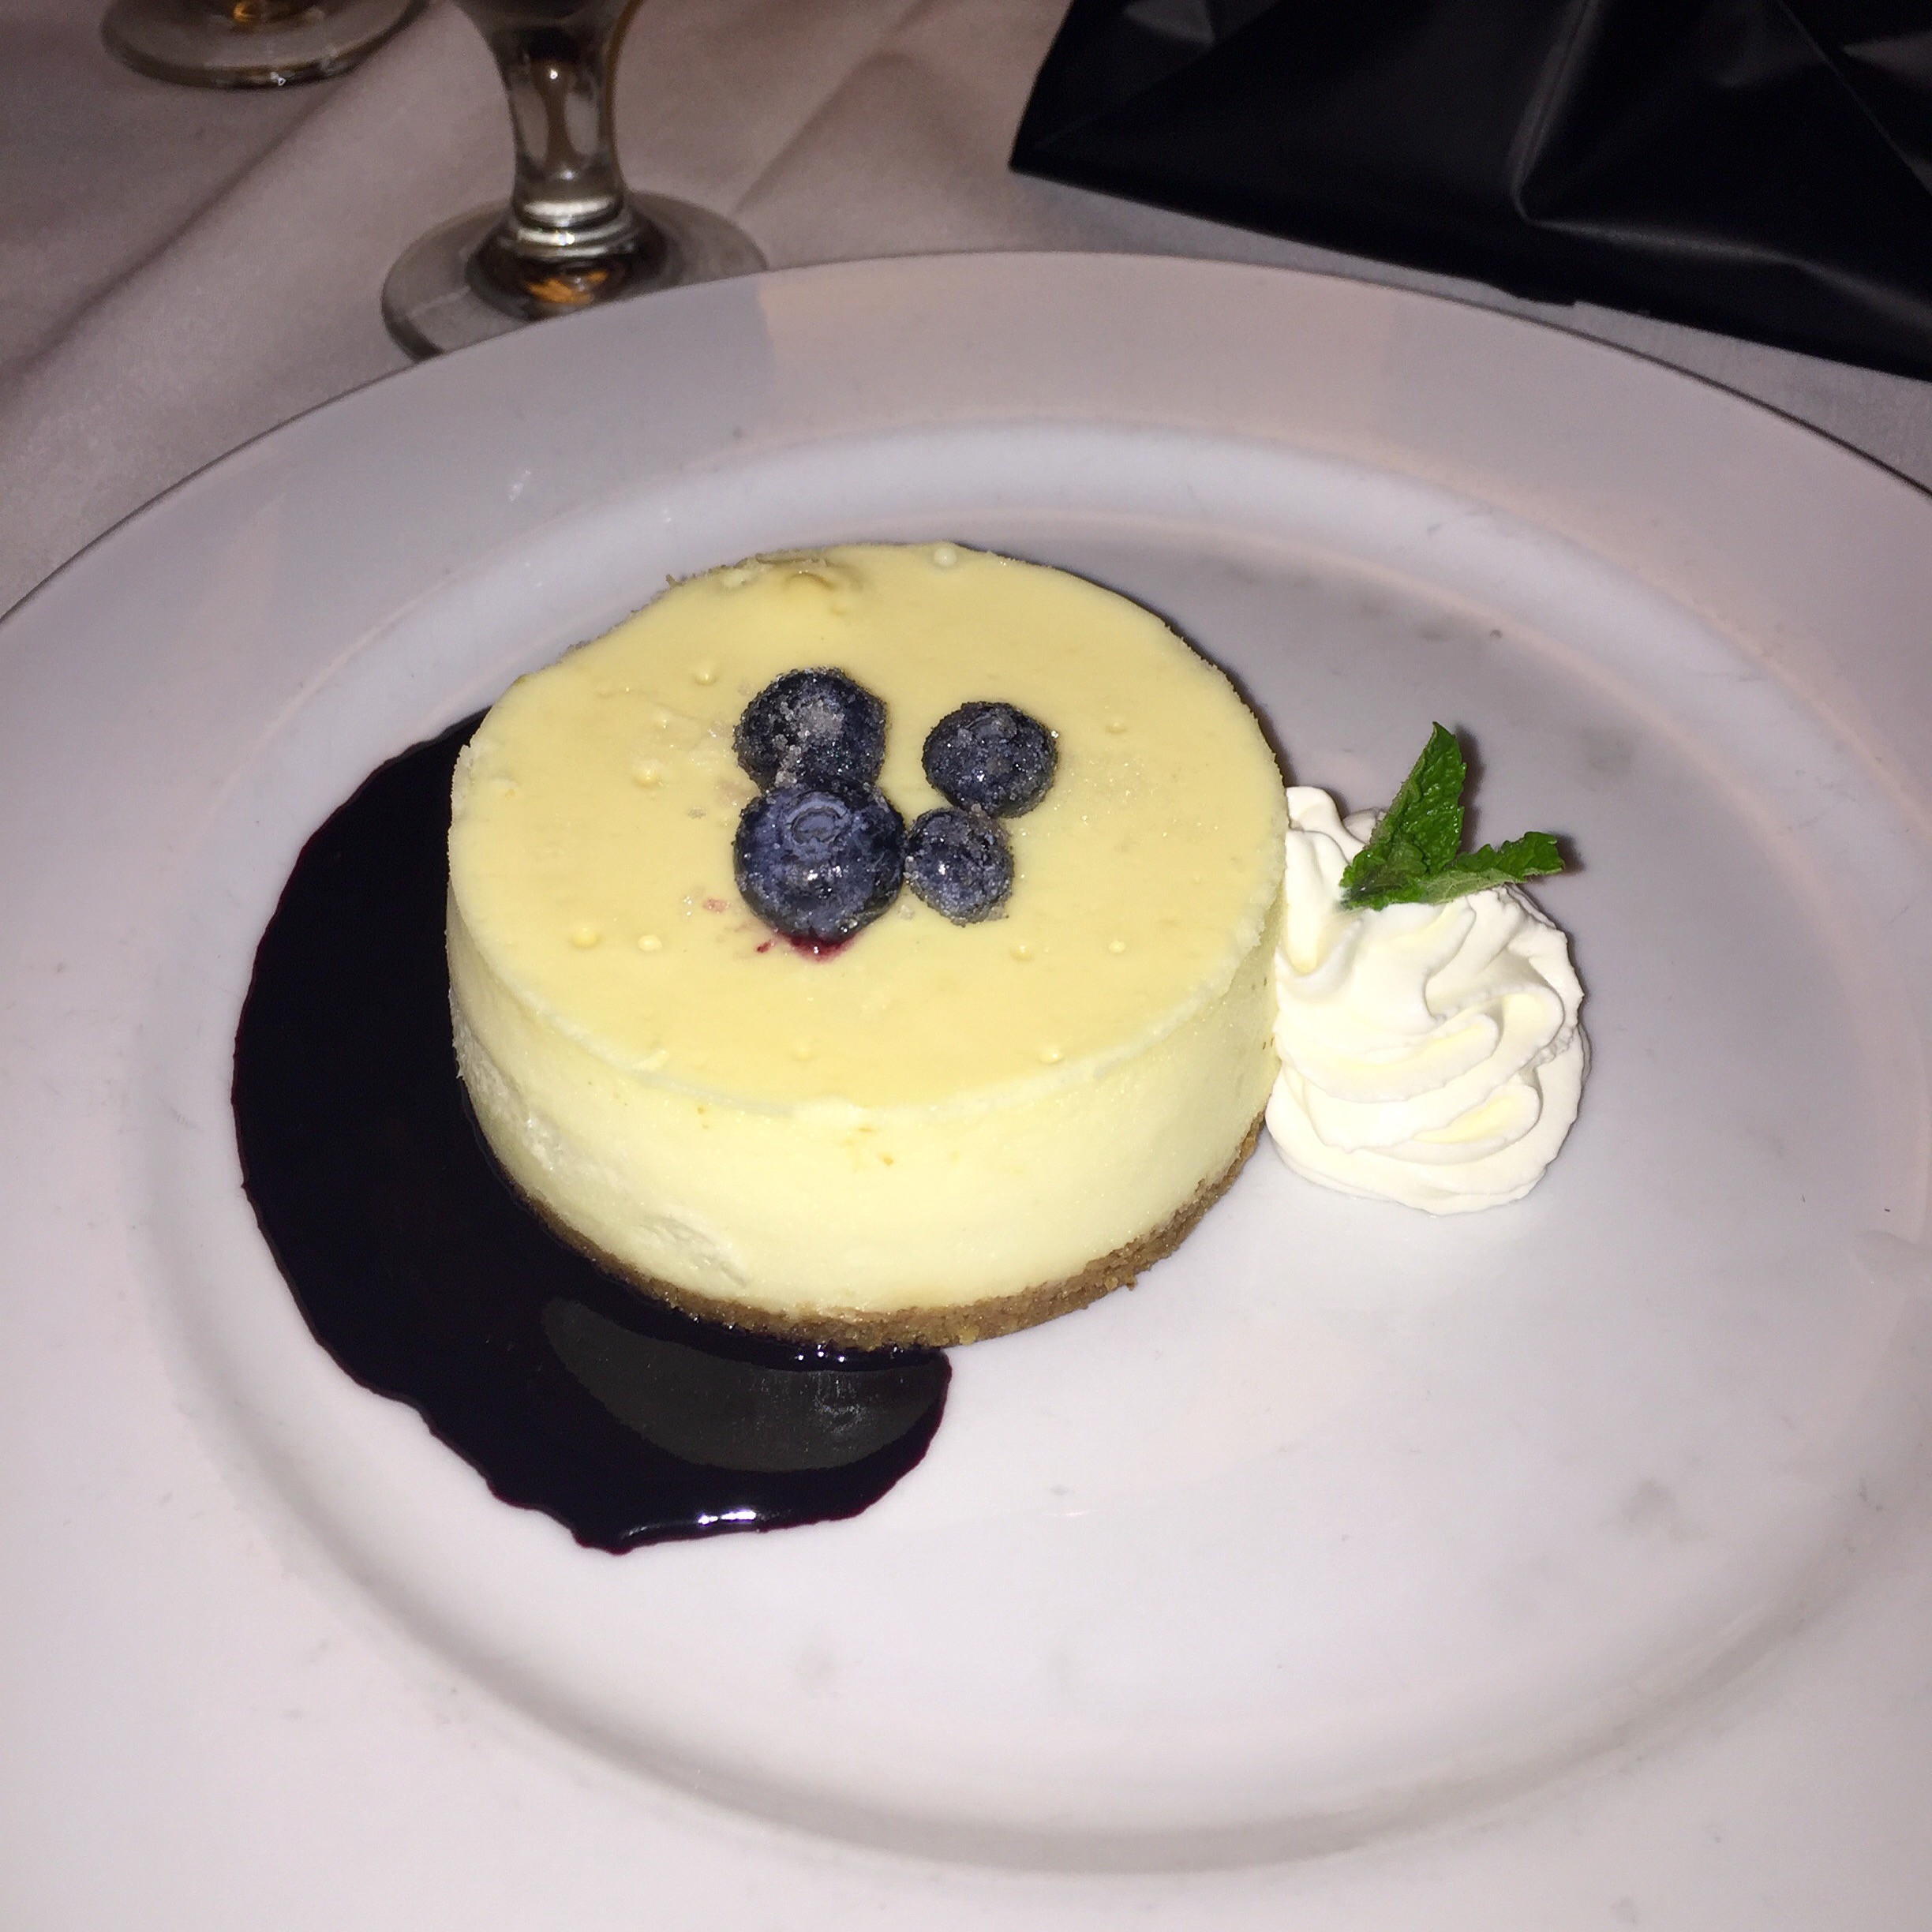 Blueberry Lemon Cheesecake.JPG